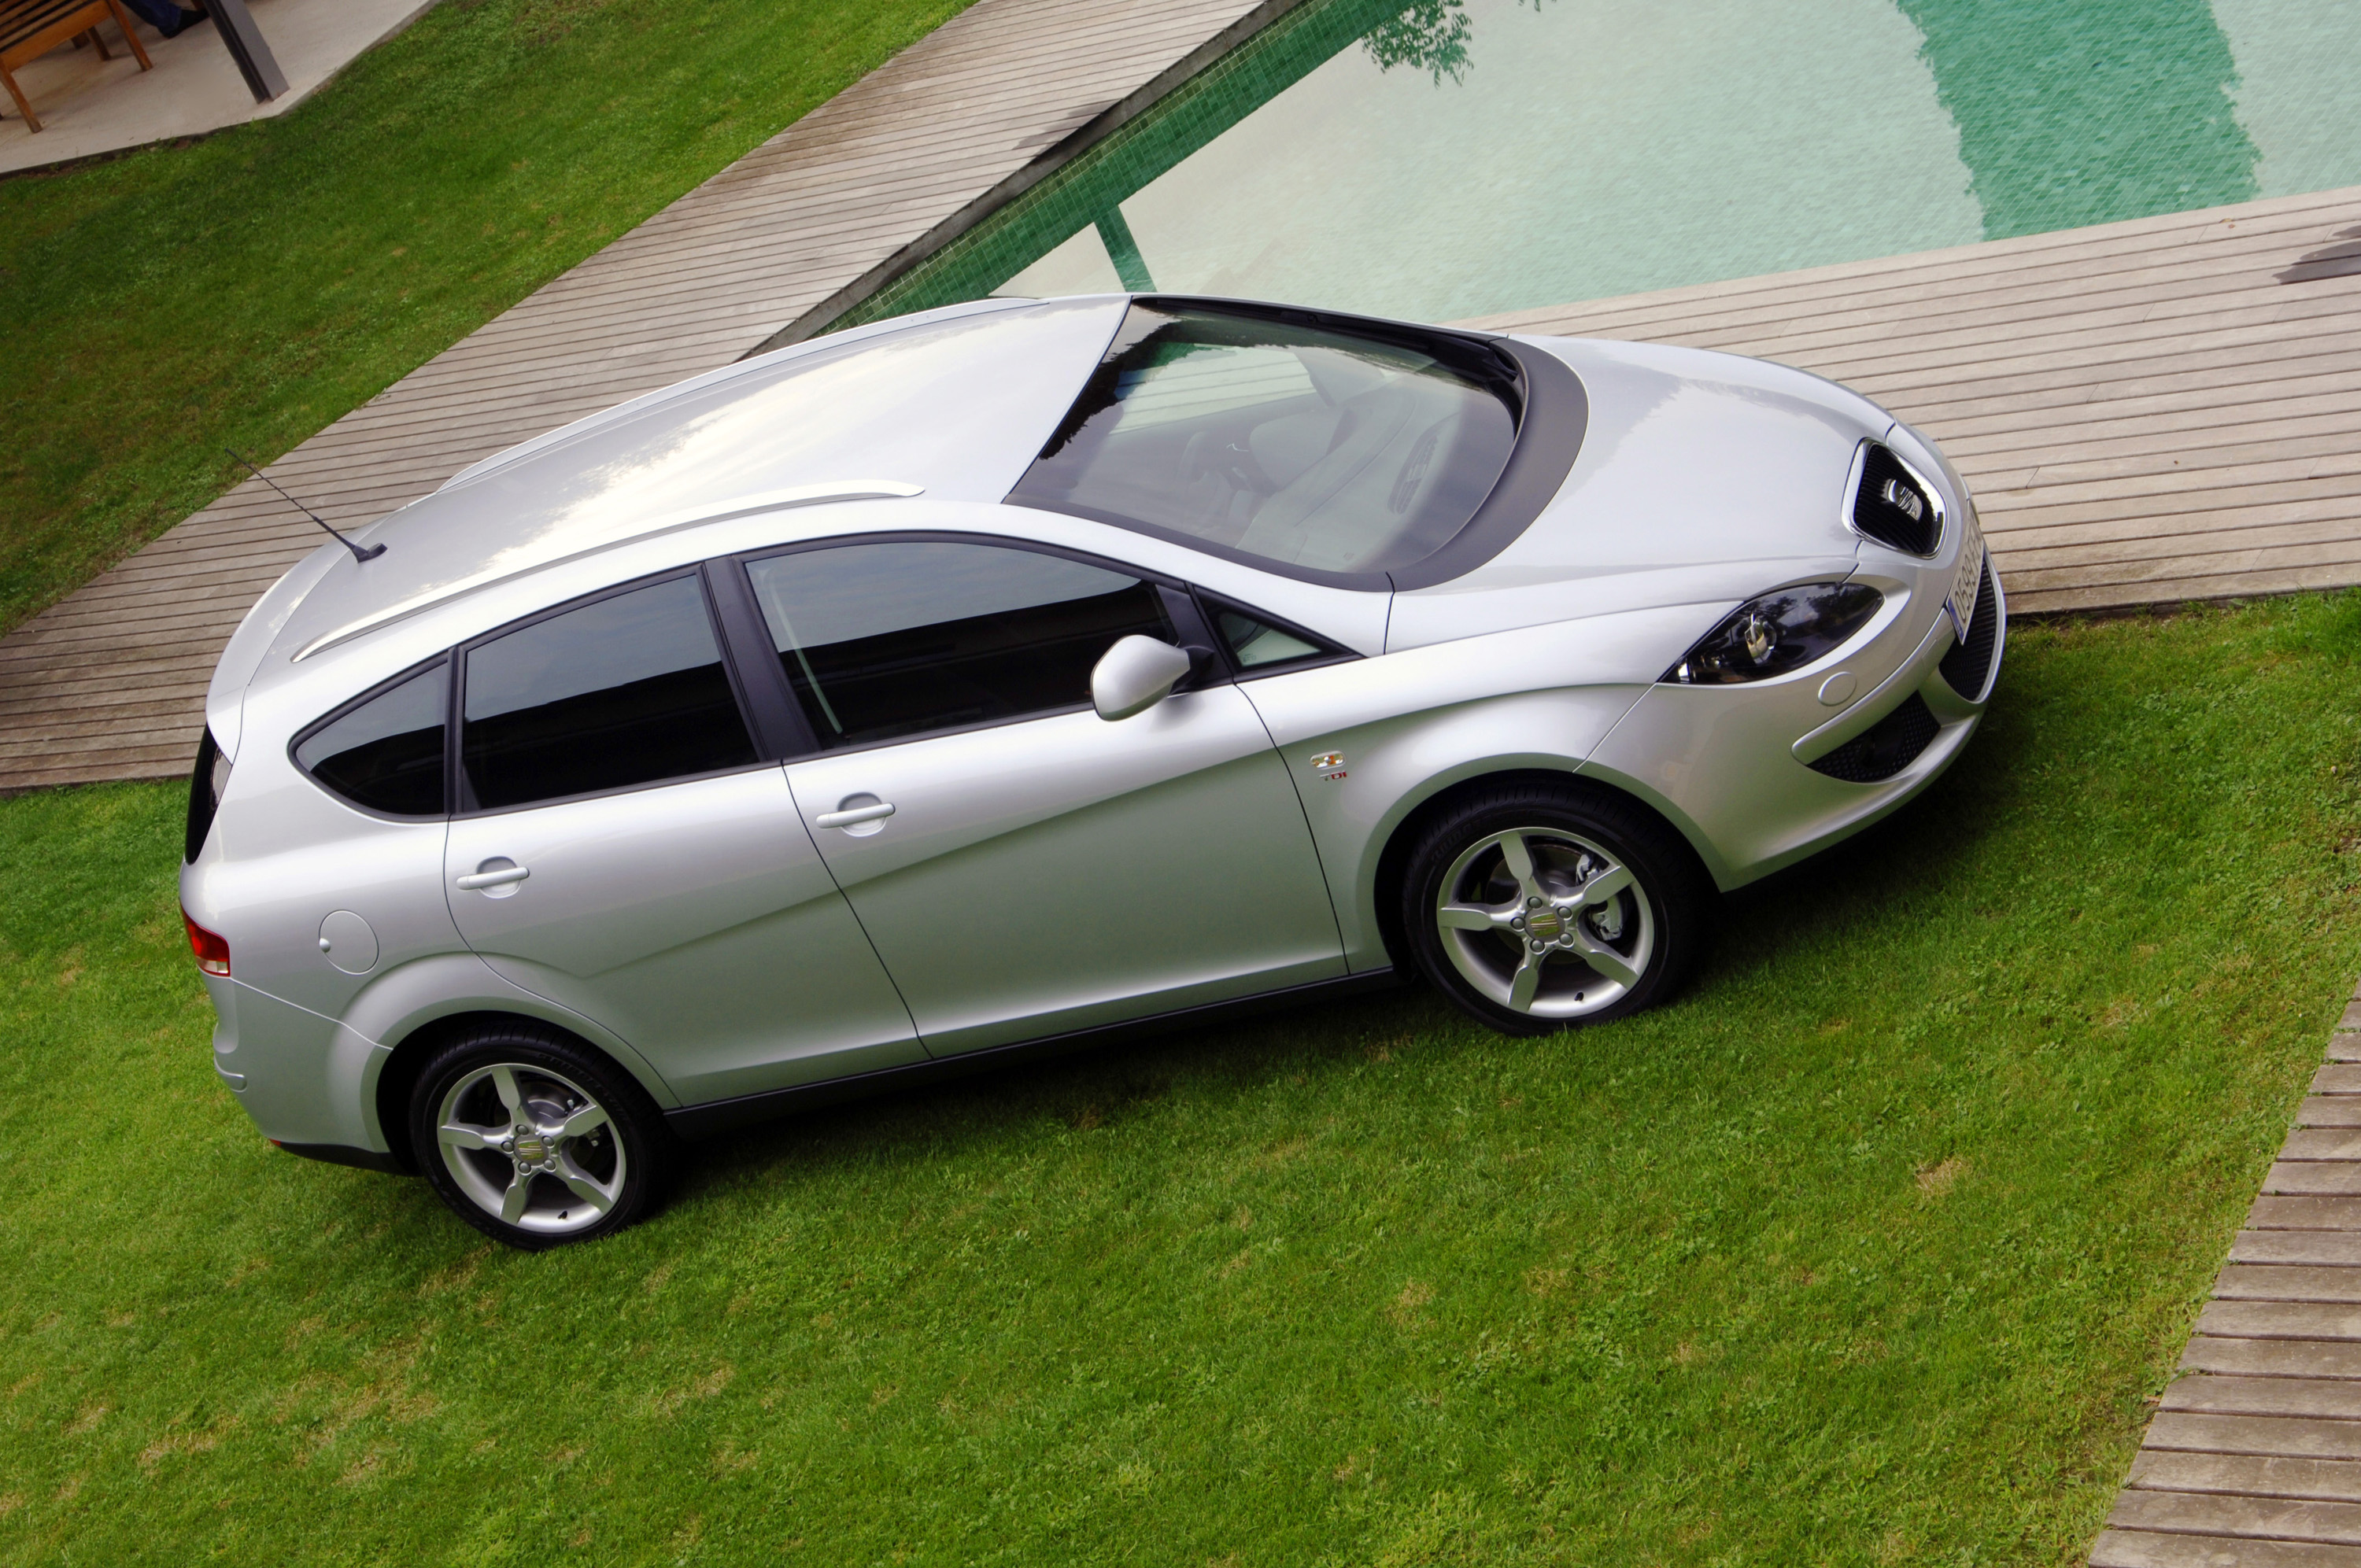 Ford C Max Review >> The SEAT Altea is one of the most reliable models on the market